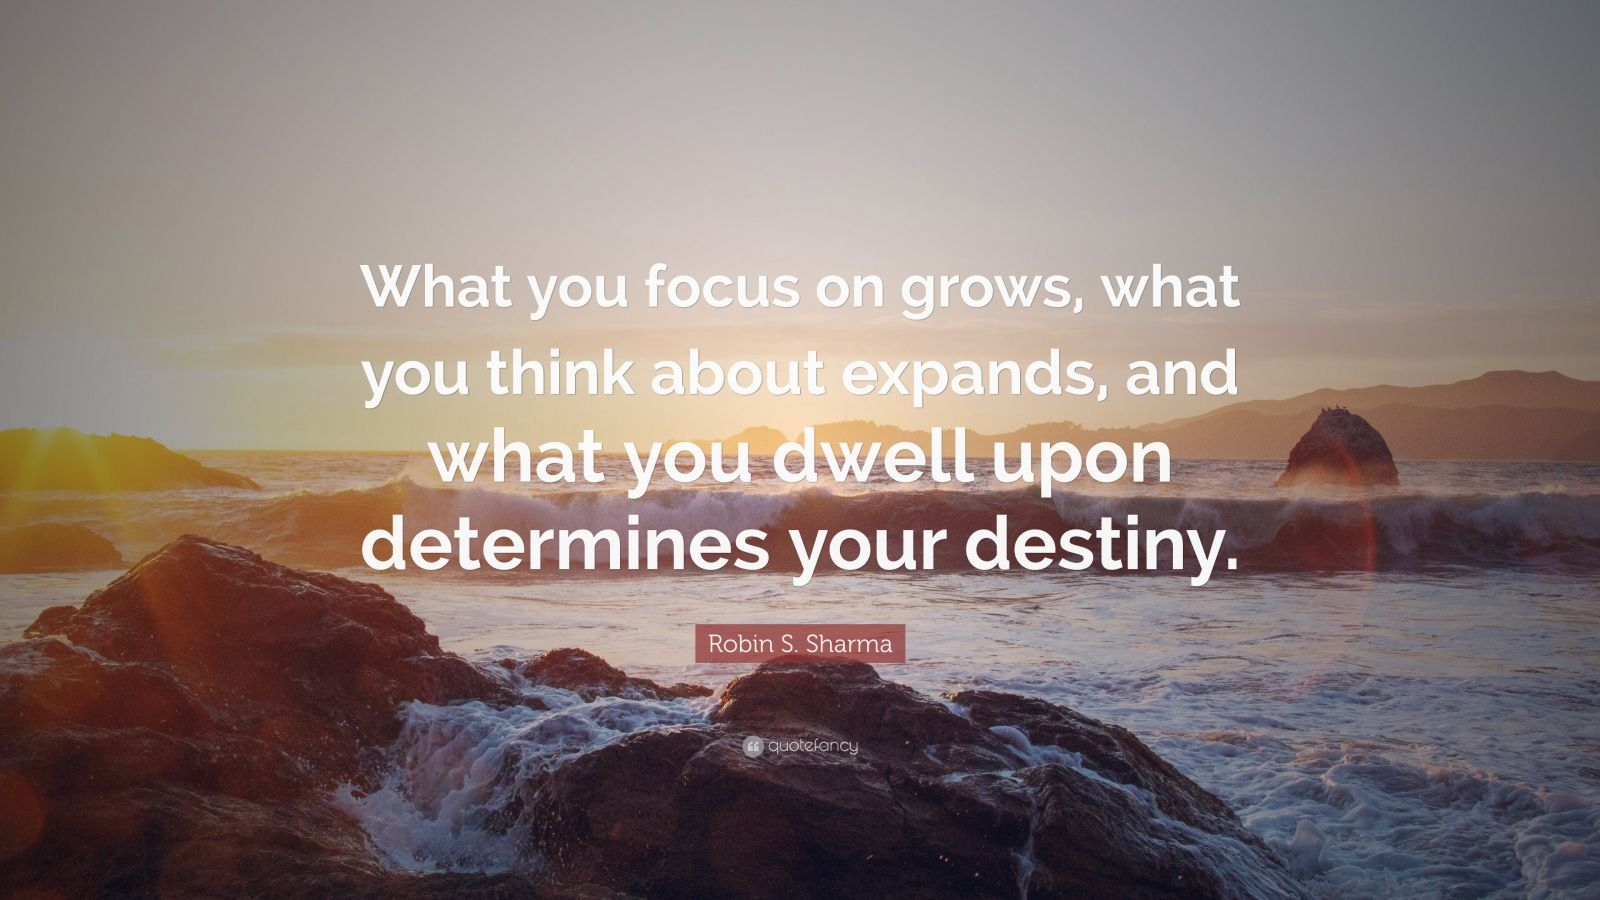 Theodore Roosevelt Wallpaper Quote Robin S Sharma Quote What You Focus On Grows What You